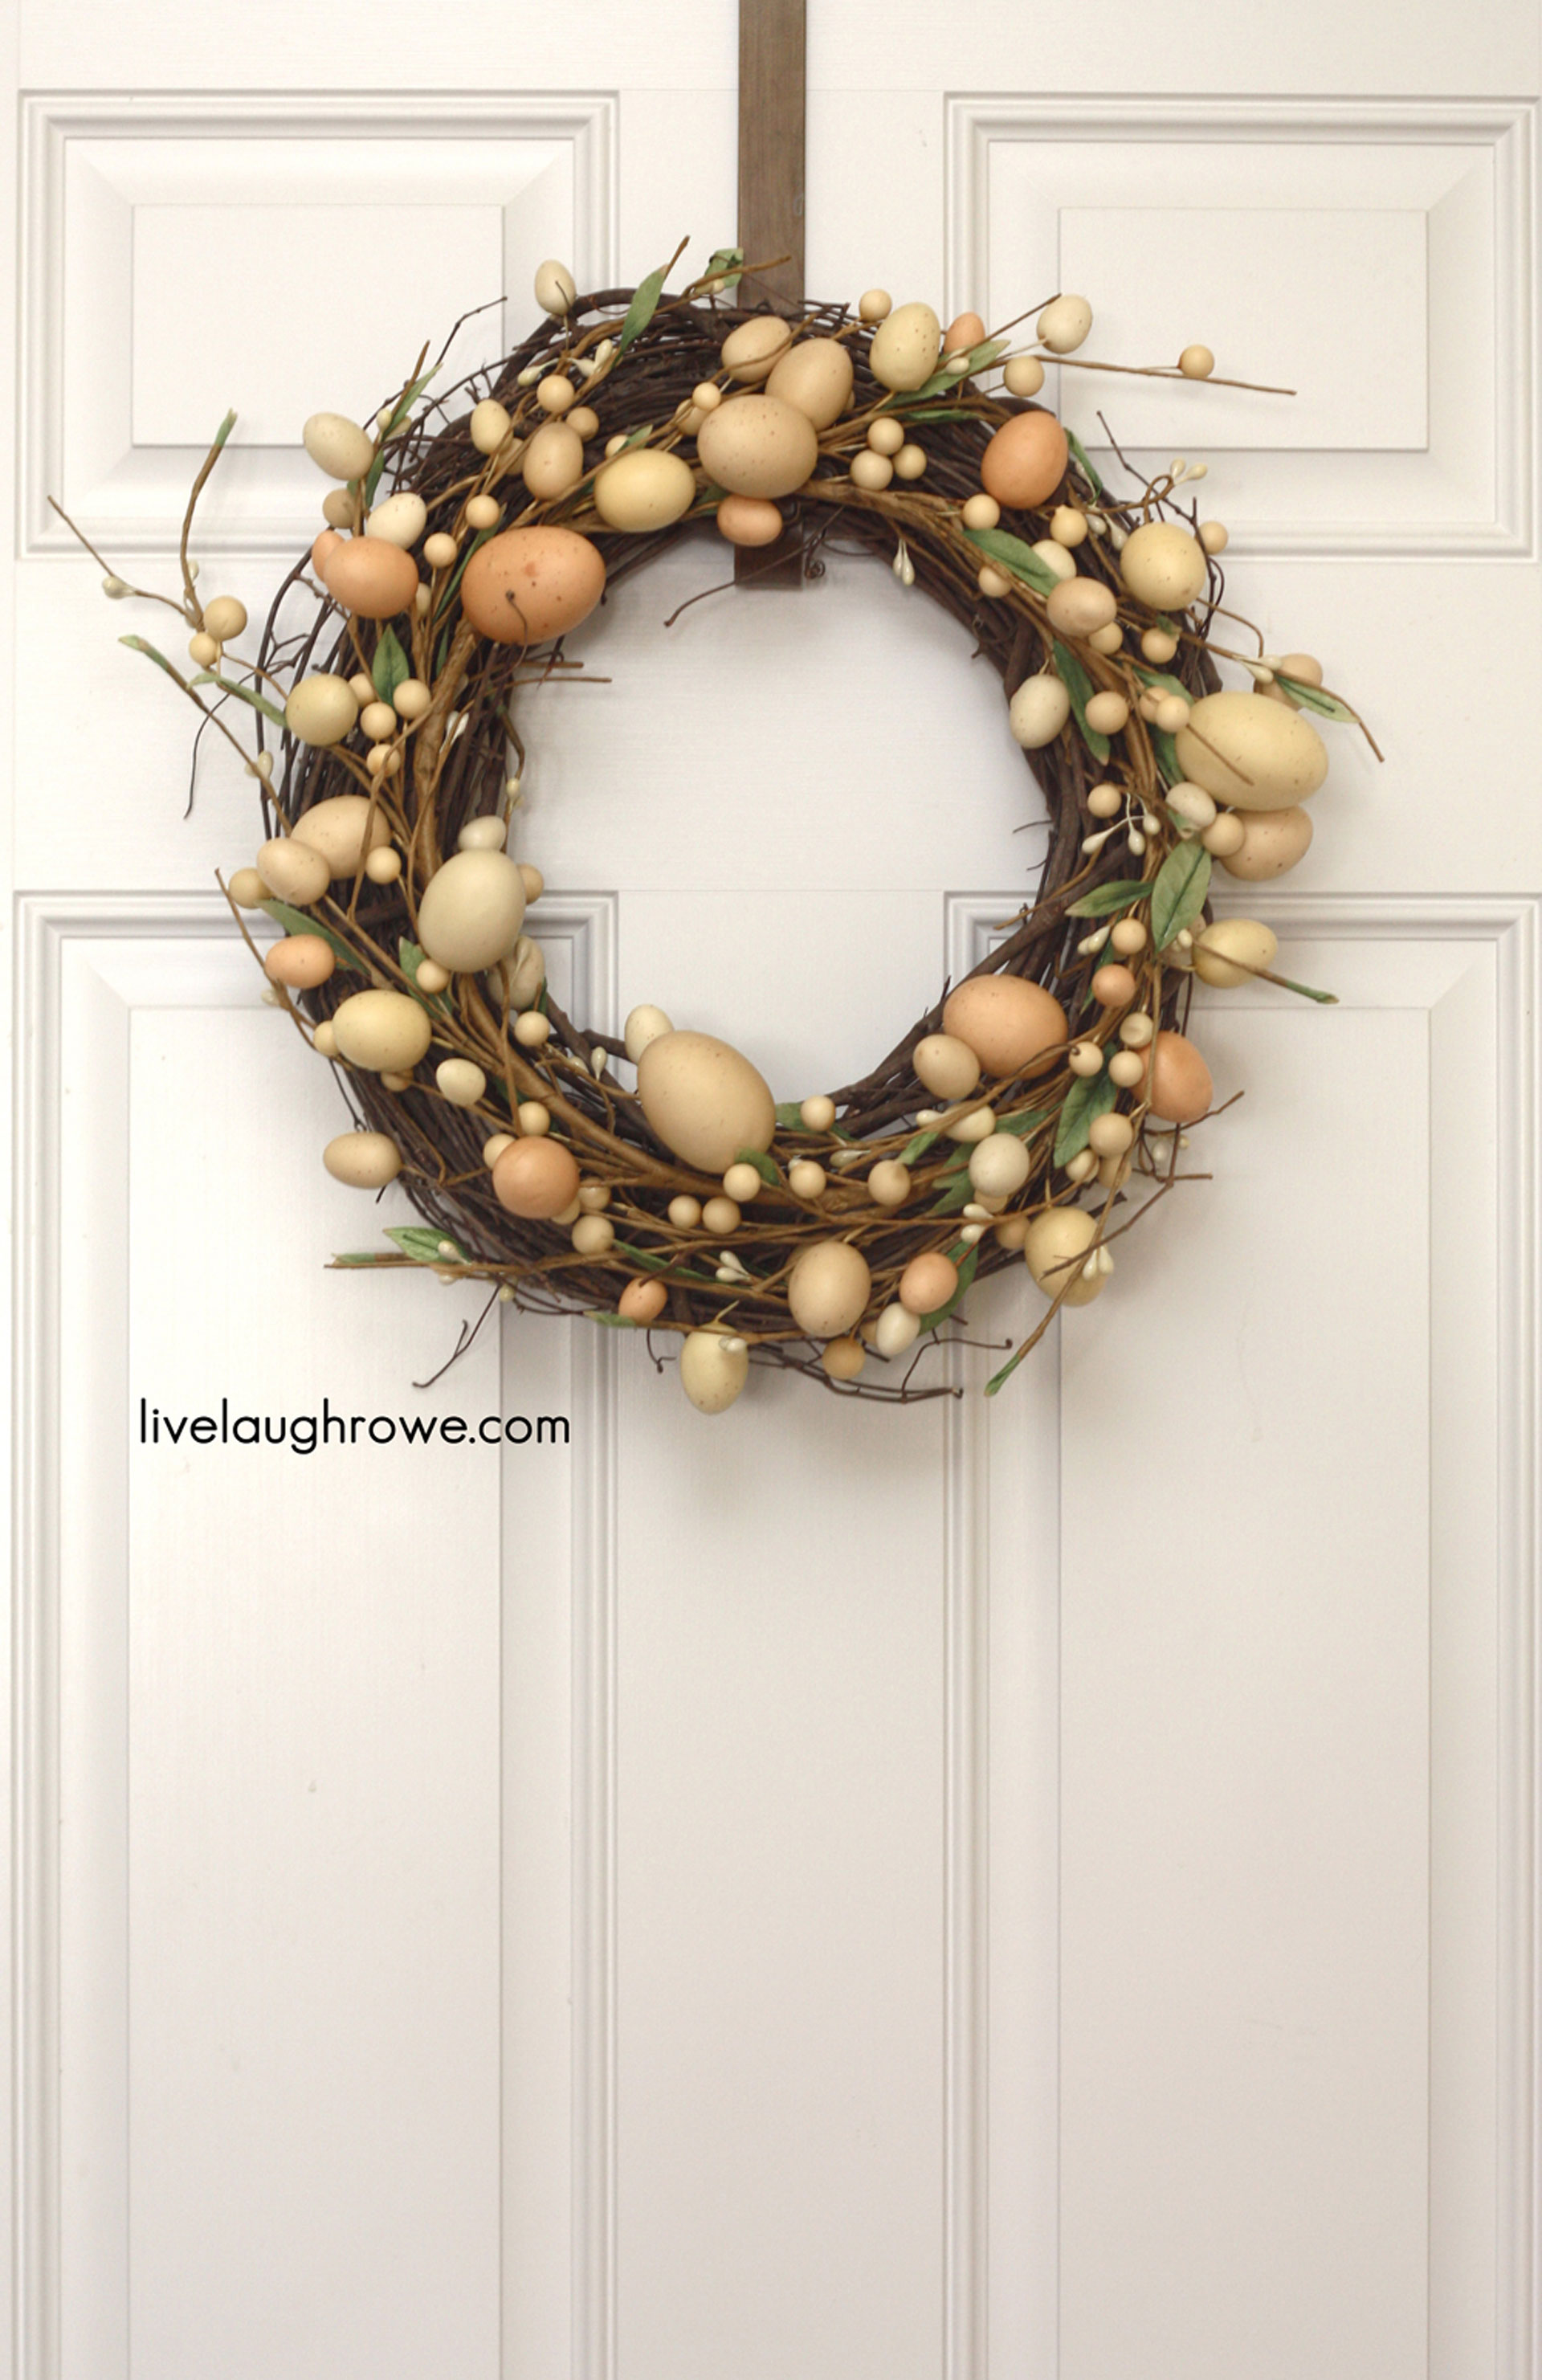 30+ DIY Easter Wreaths - Ideas for Easter Door Decorations to Make